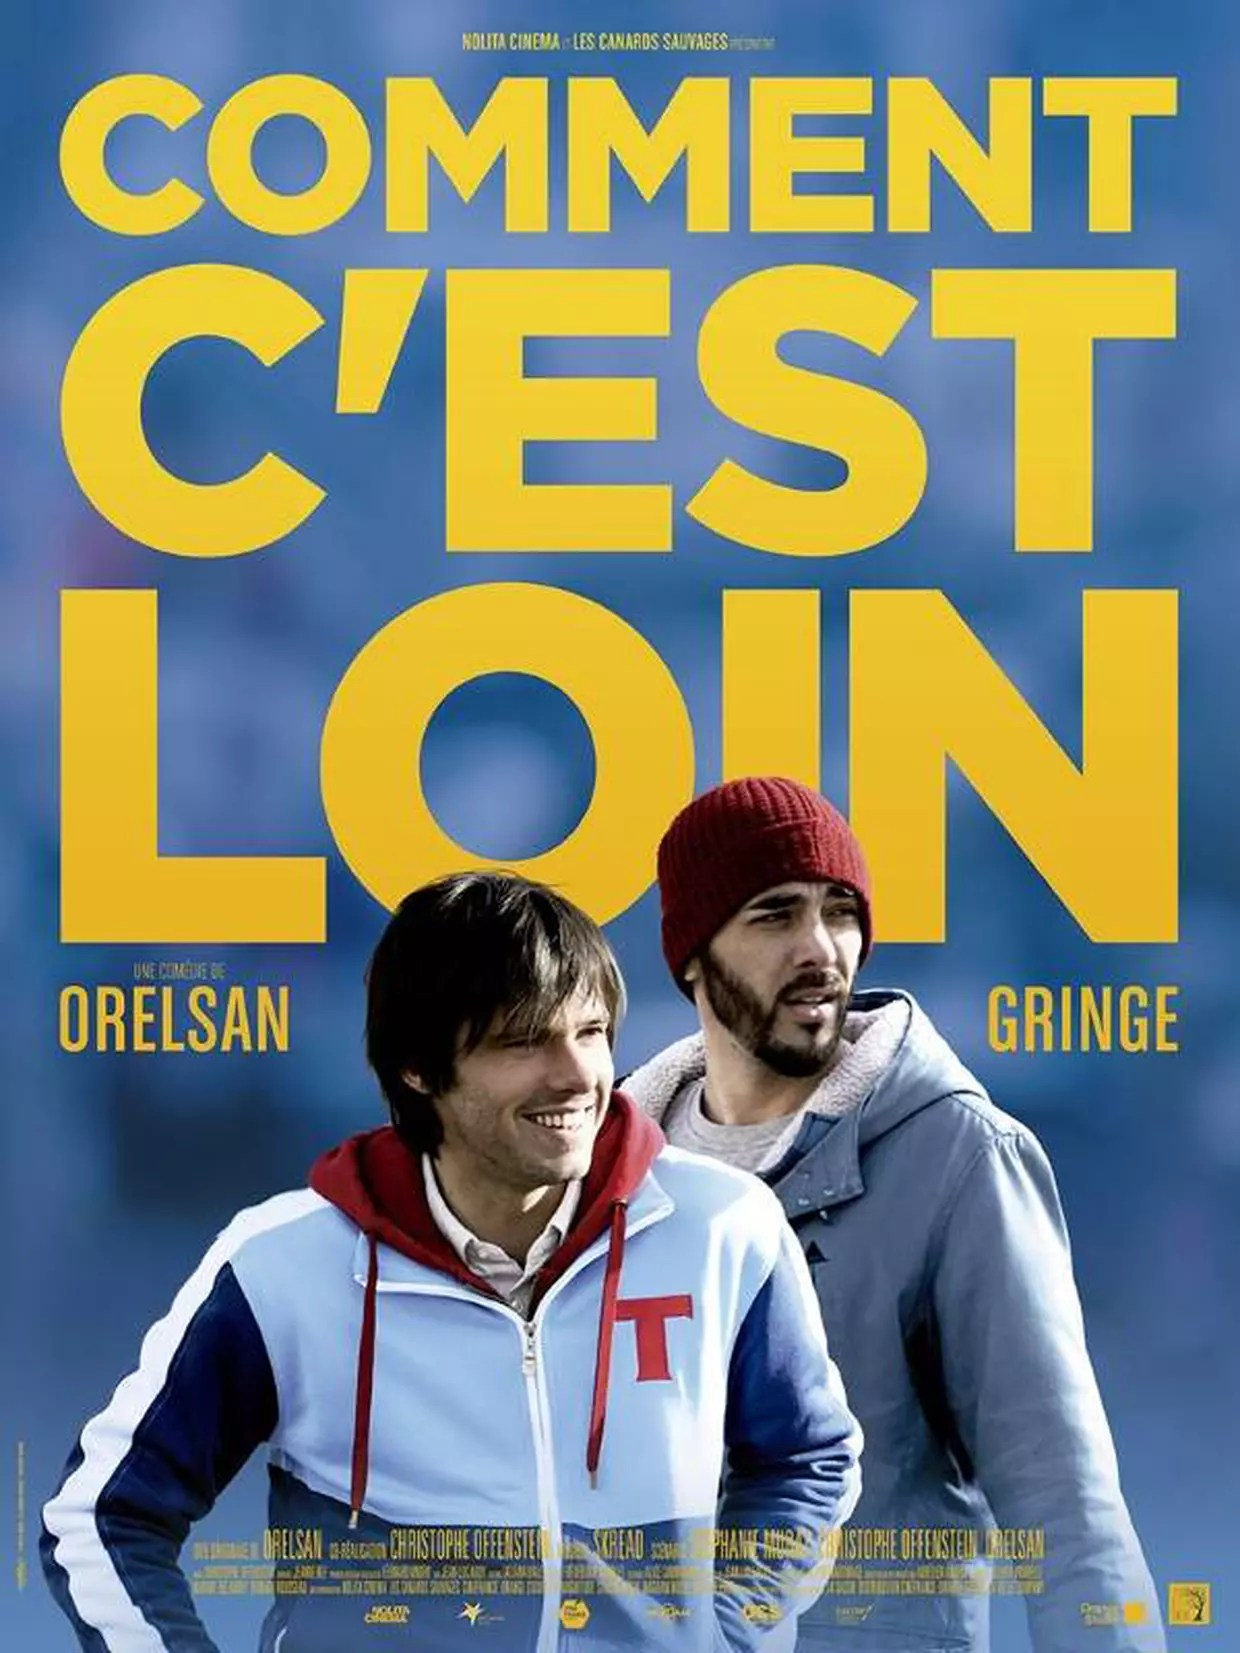 Comment c'est loin streaming - Filmistreaming